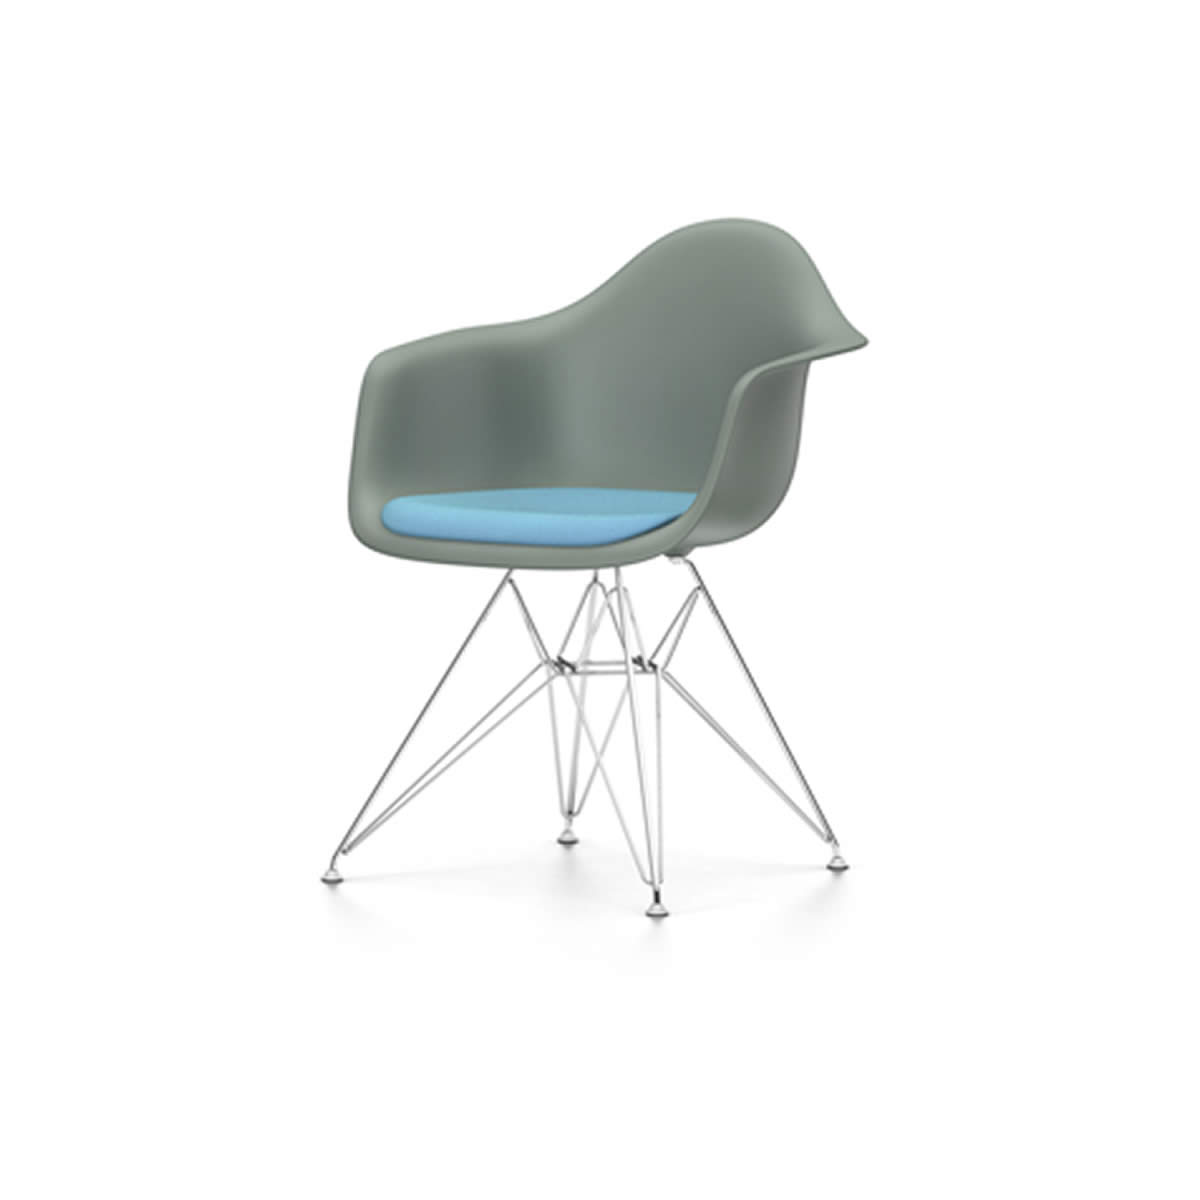 Mousse Chaise Rembourrage Chaise Vitra Dar Rembourrage Assise Gris Mousse